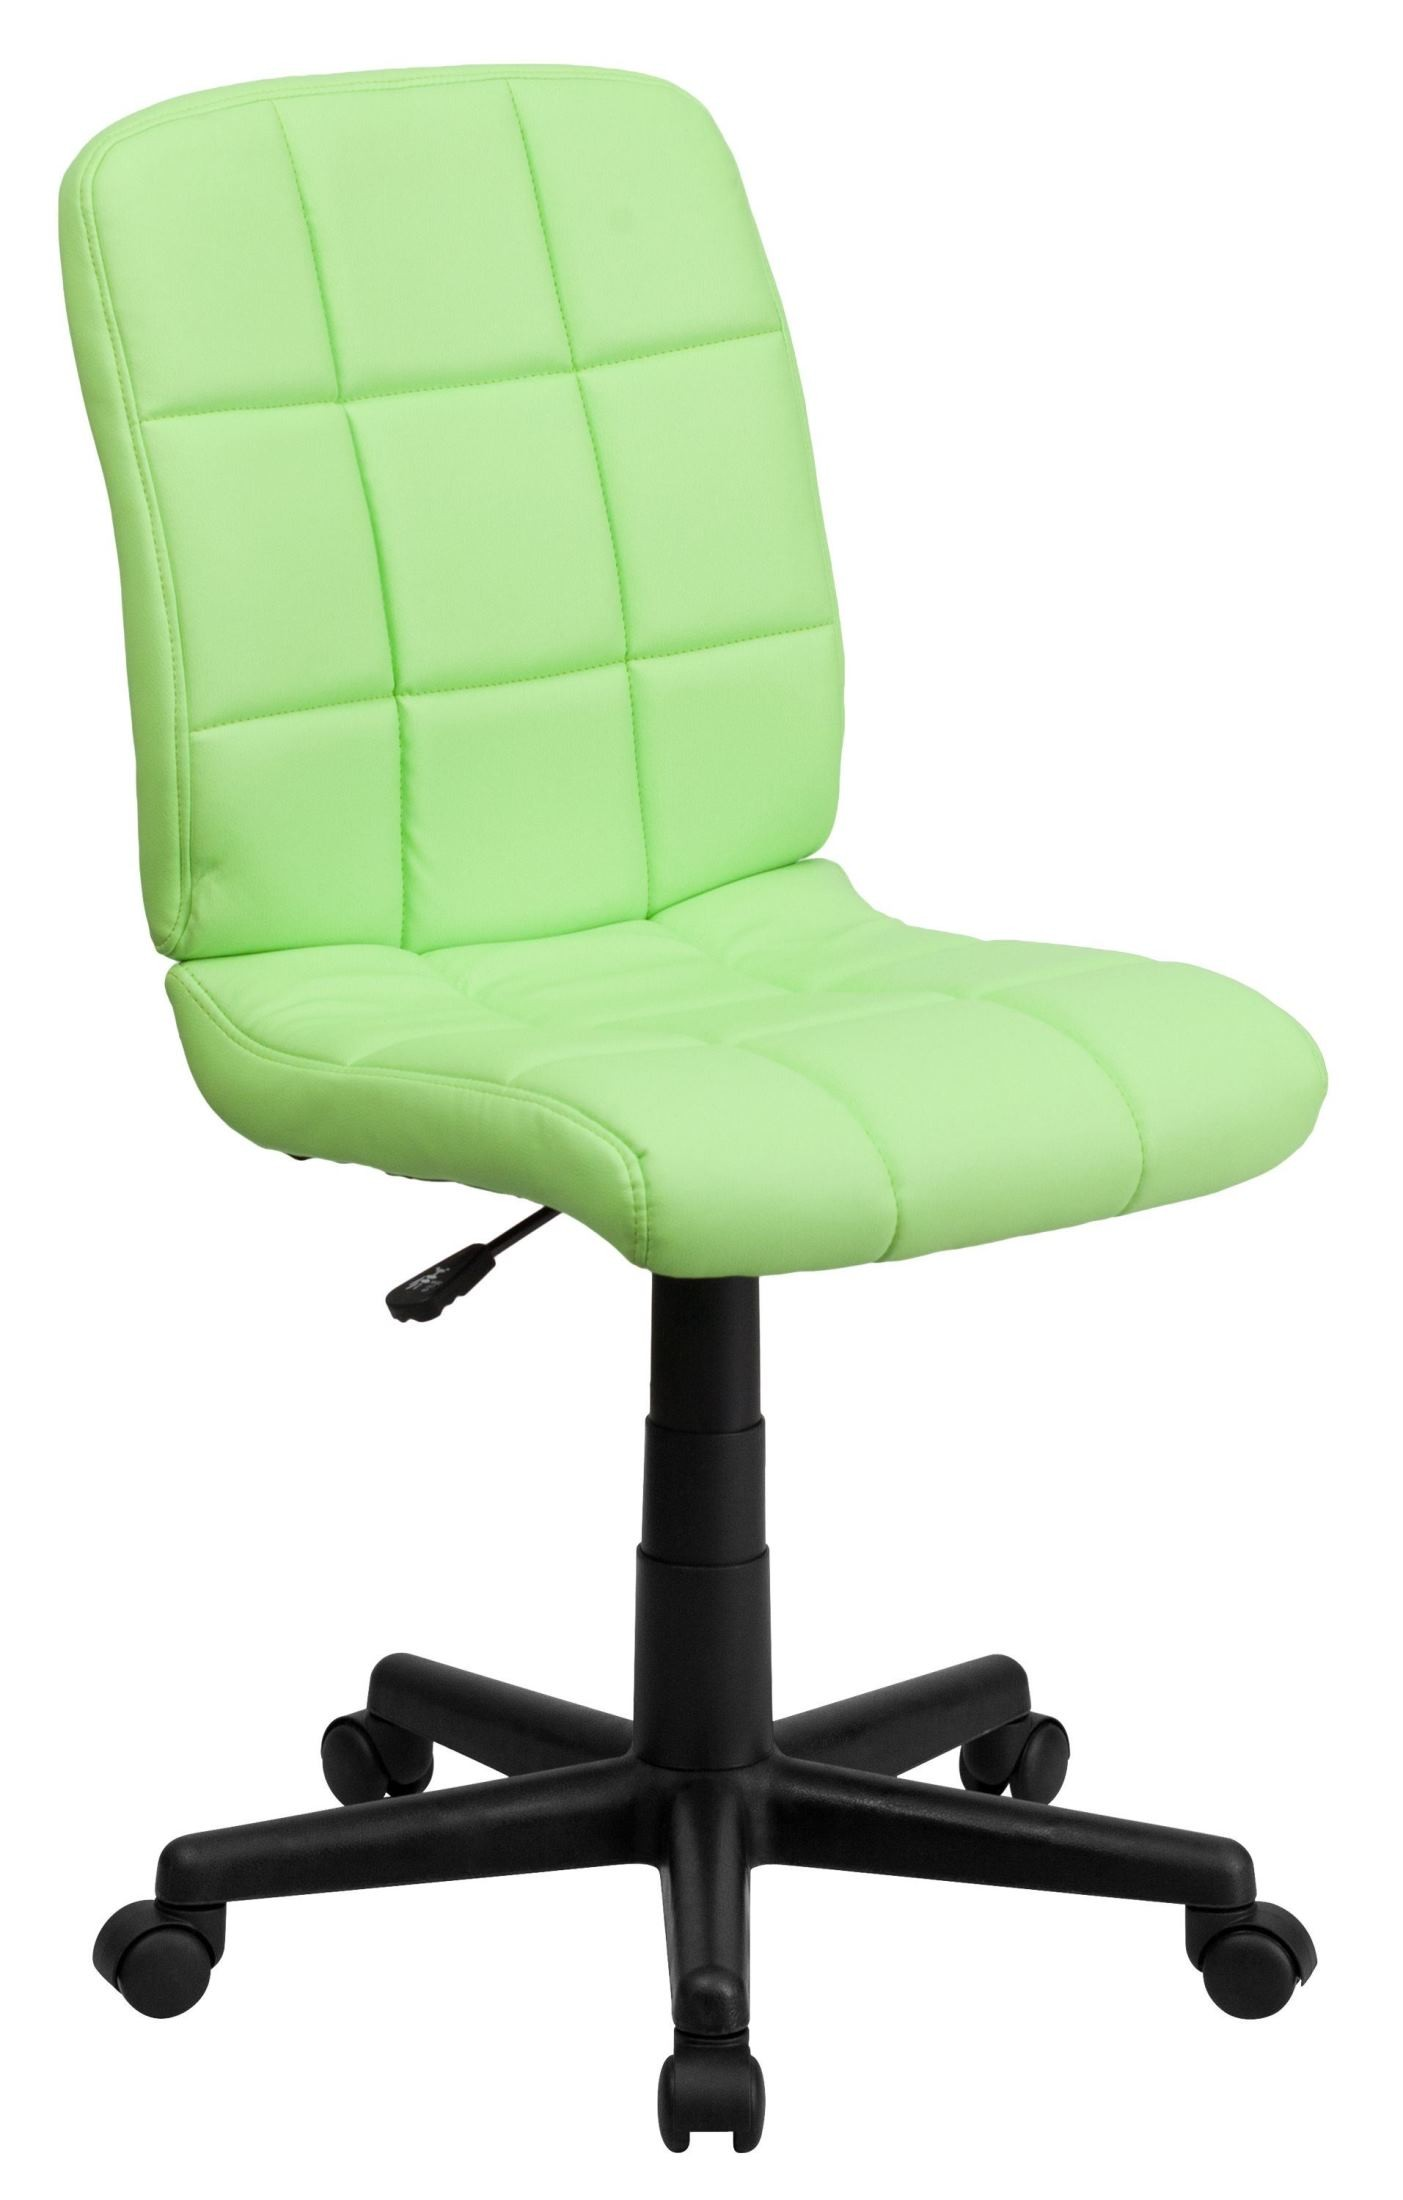 Green Quilted Task Chair GO 1691 1 GREEN GG Renegade